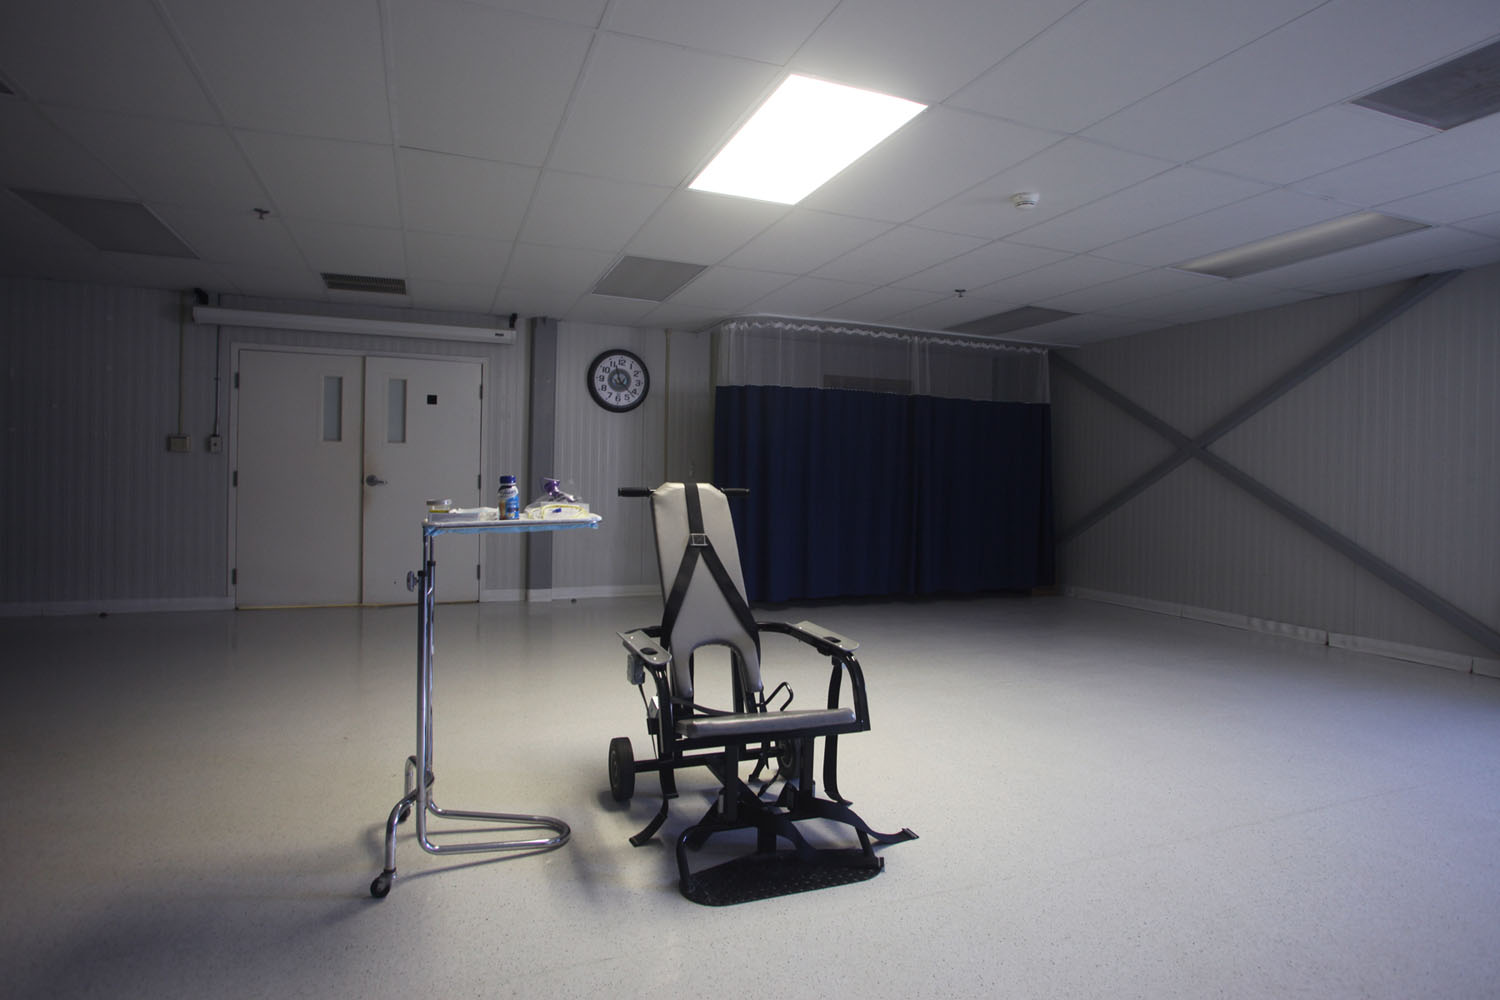 May 16, 2013. A restraining chair and force-feeding apparatus on display in an empty room of the detainee hospital at Guantanamo Bay.